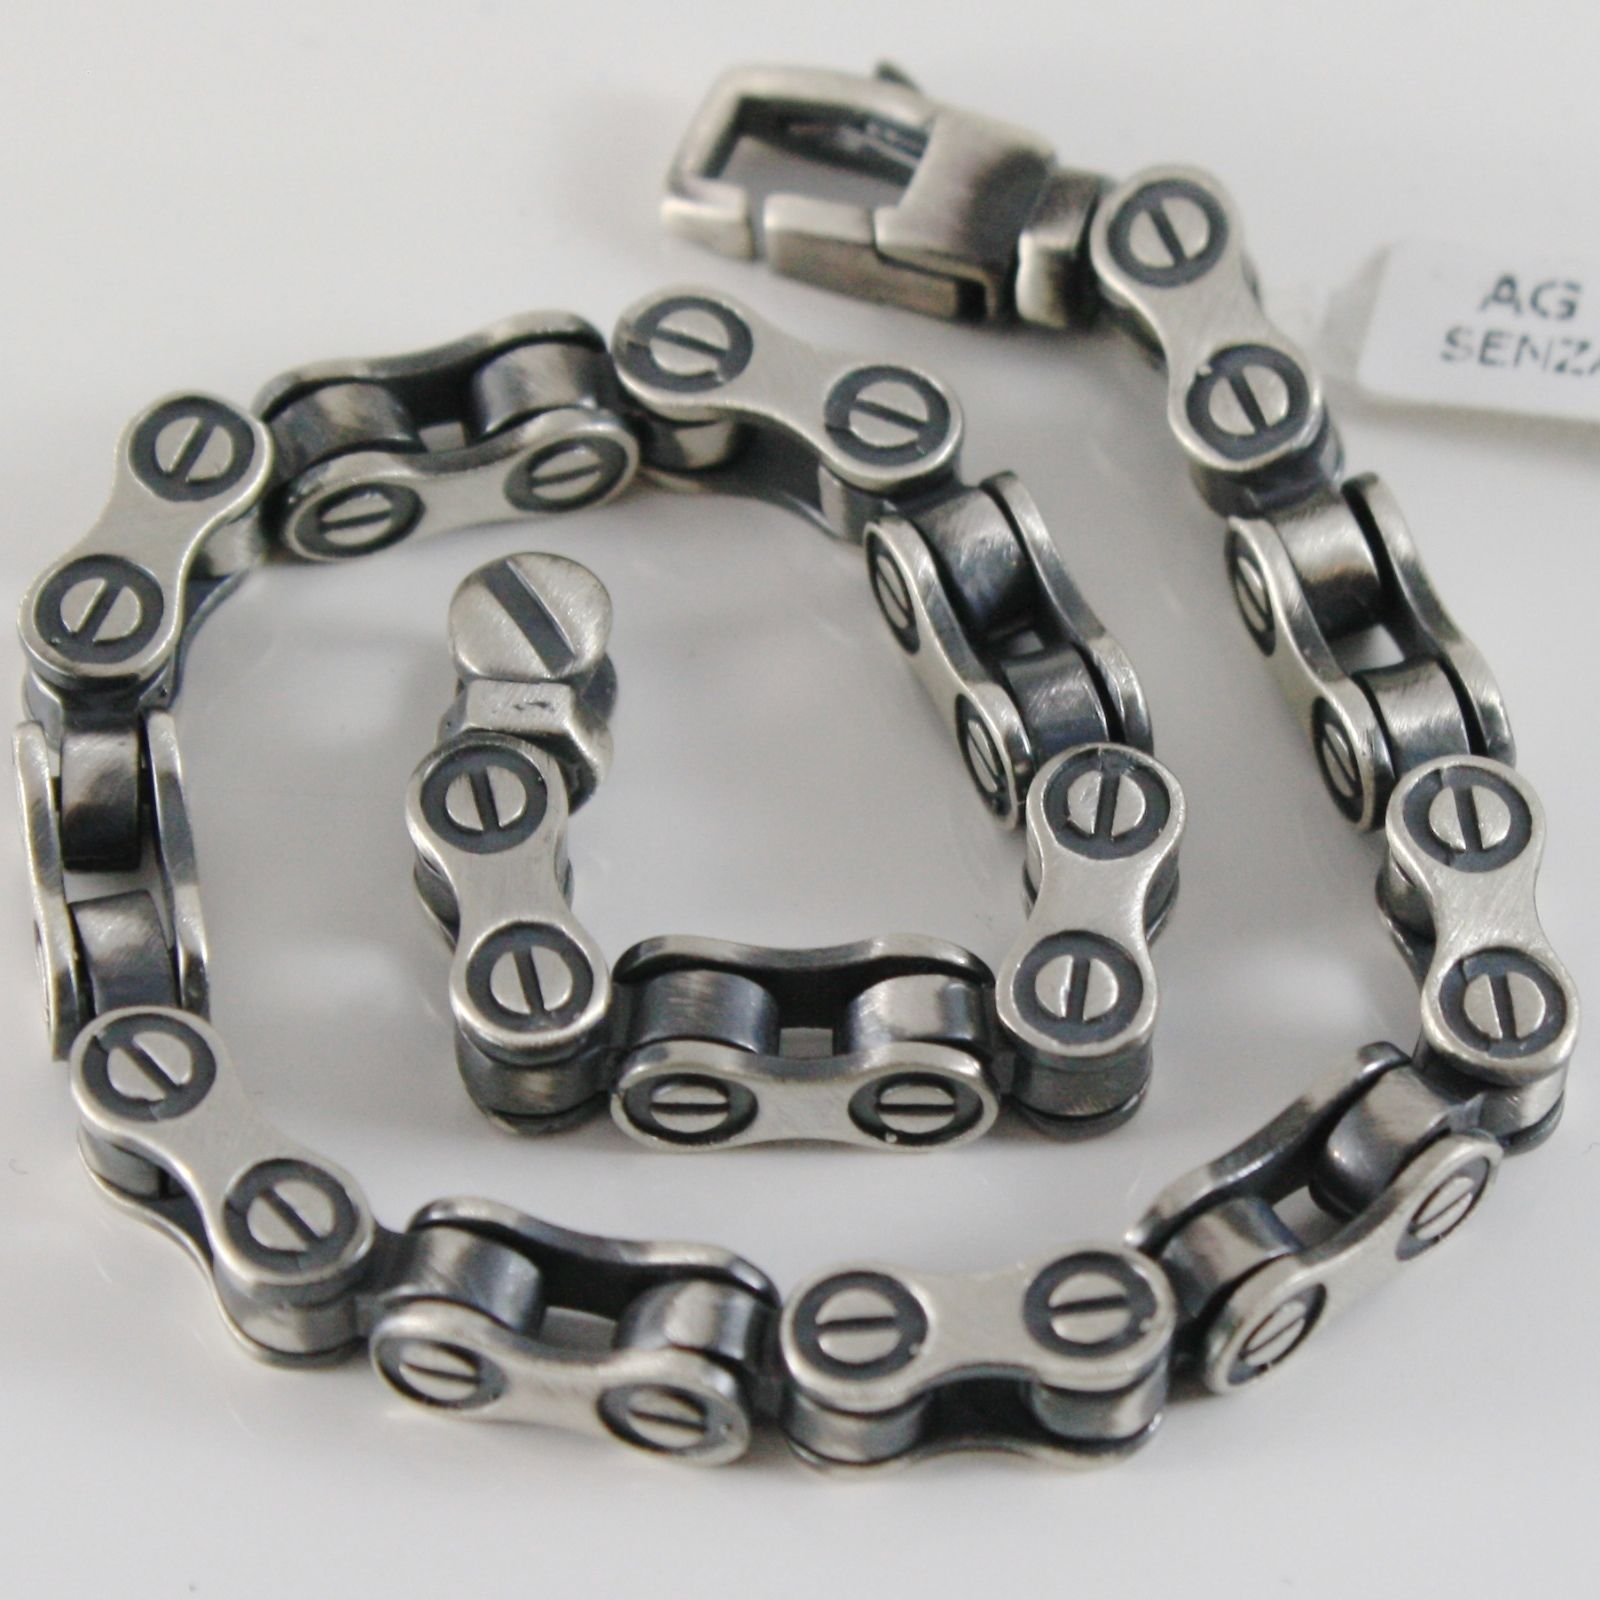 SOLID 925 BURNISHED SILVER BRACELET MOTORCYCLE CHAIN FINELY WORKED MADE IN ITALY